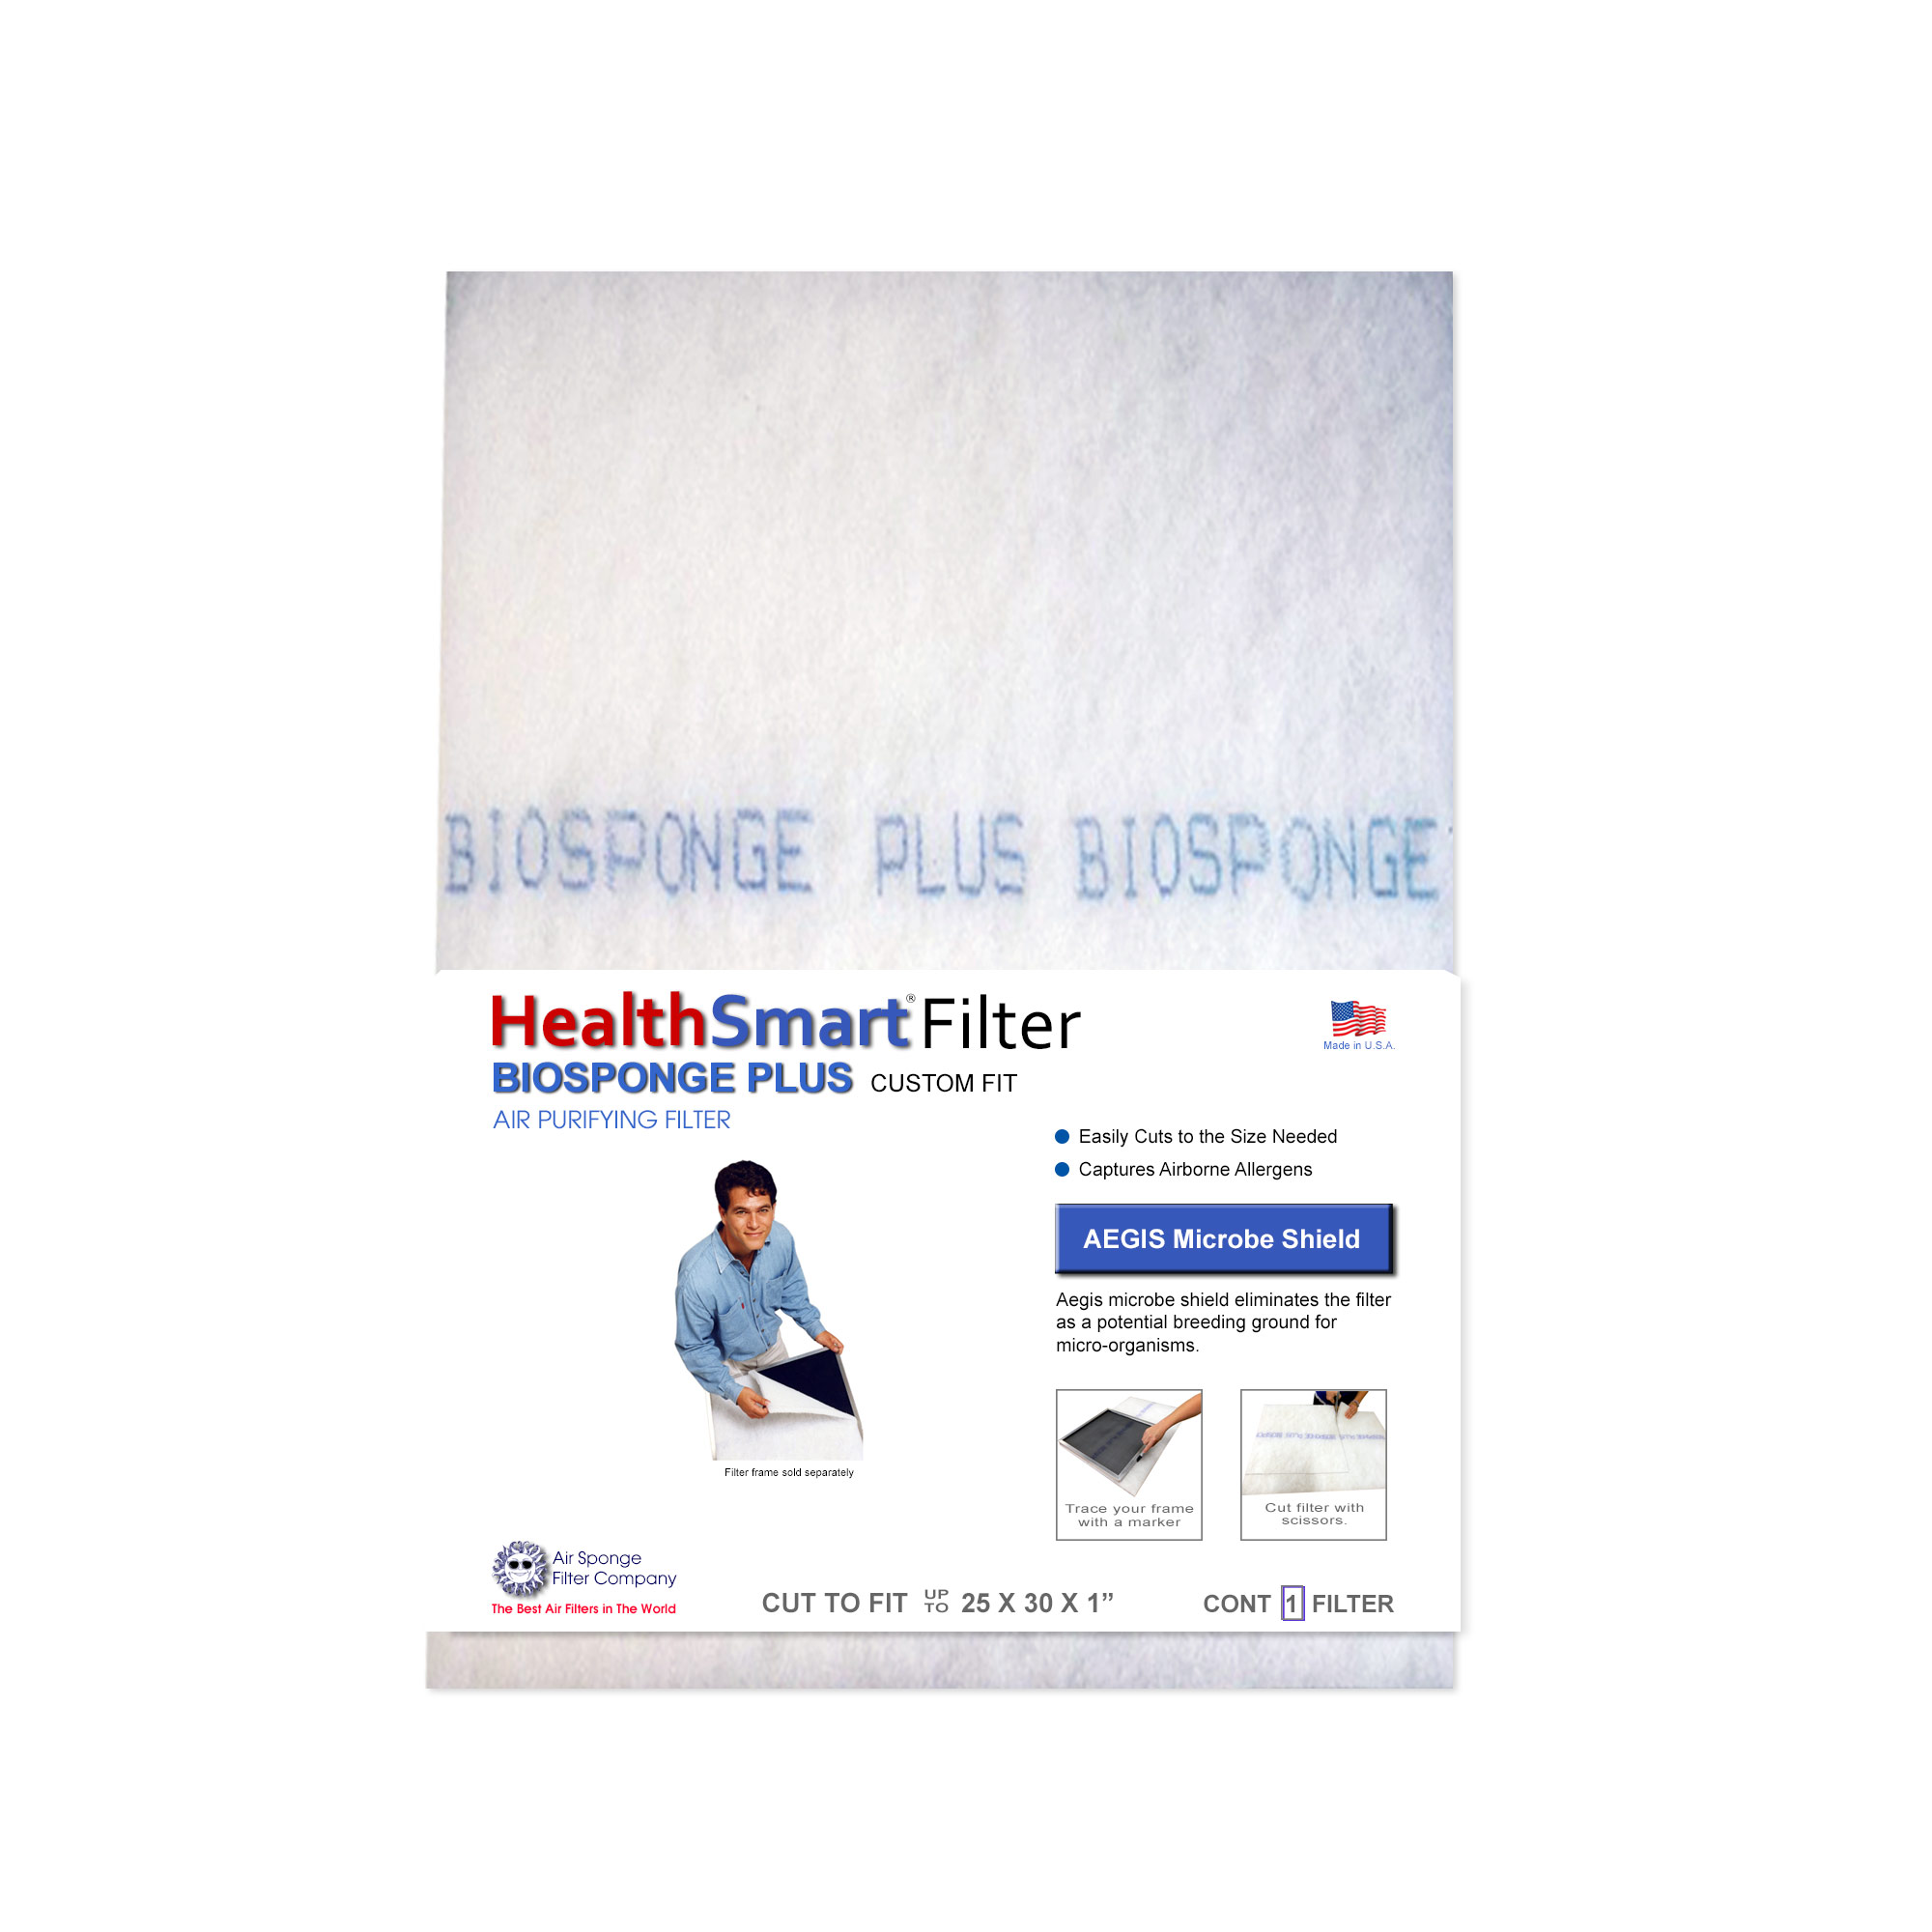 "Biosponge Plus Replacement Pad - Cut To Fit (25 x 30 x 1"" Max) for HealthSmart AC, Furnace Filter System"